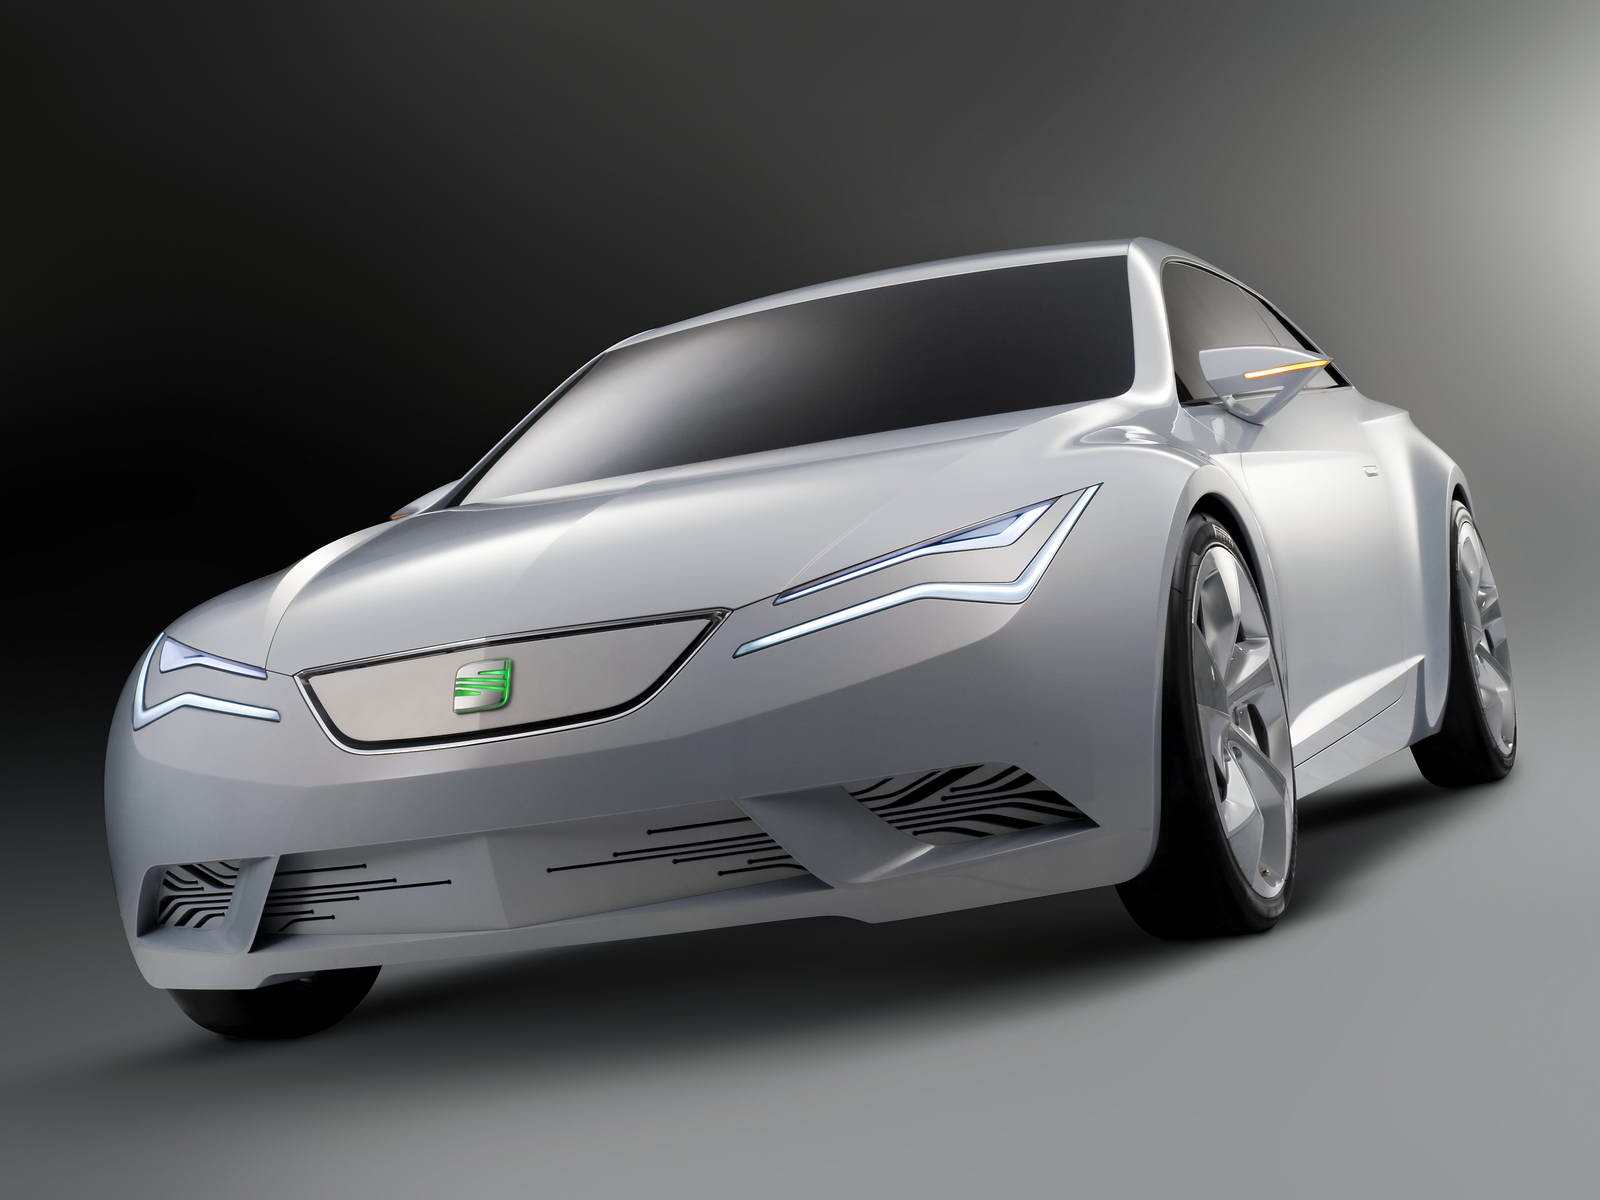 seat_ibe_concept_01